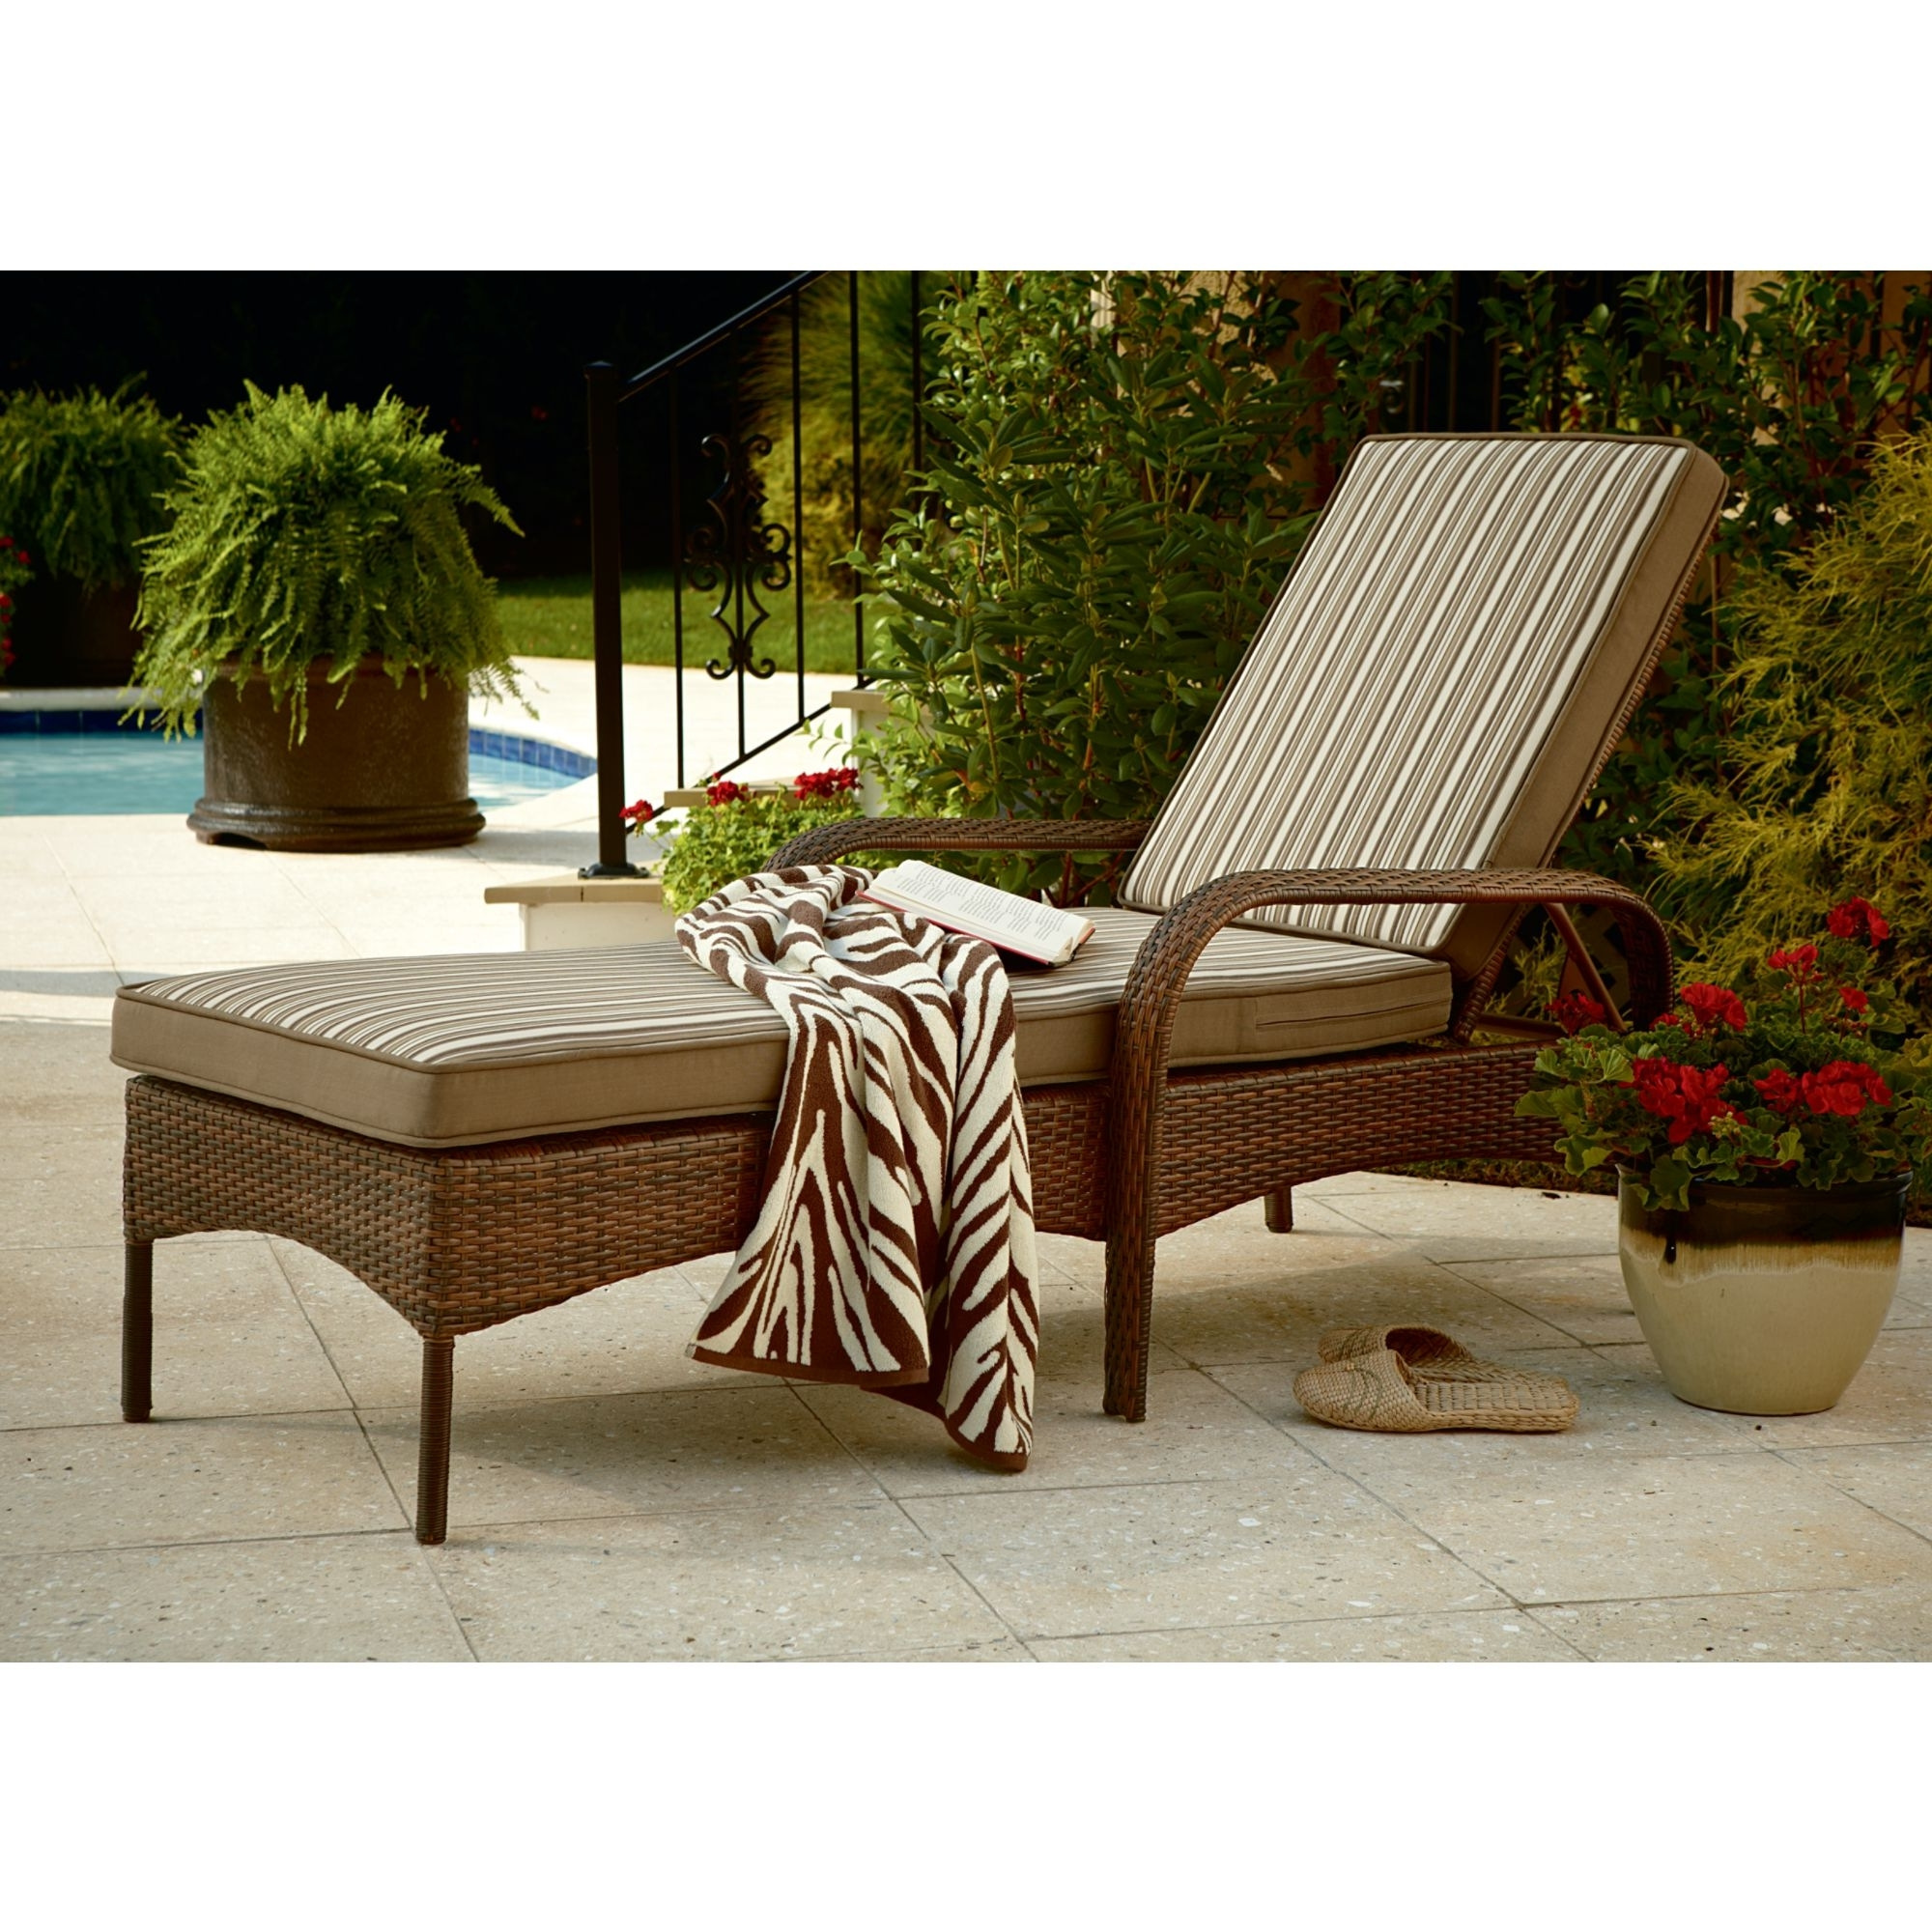 Widely Used Outdoor : Best Chaise Lounge Walmart Double Chaise Lounge Chaise With White Wicker Chaise Lounges (View 12 of 15)